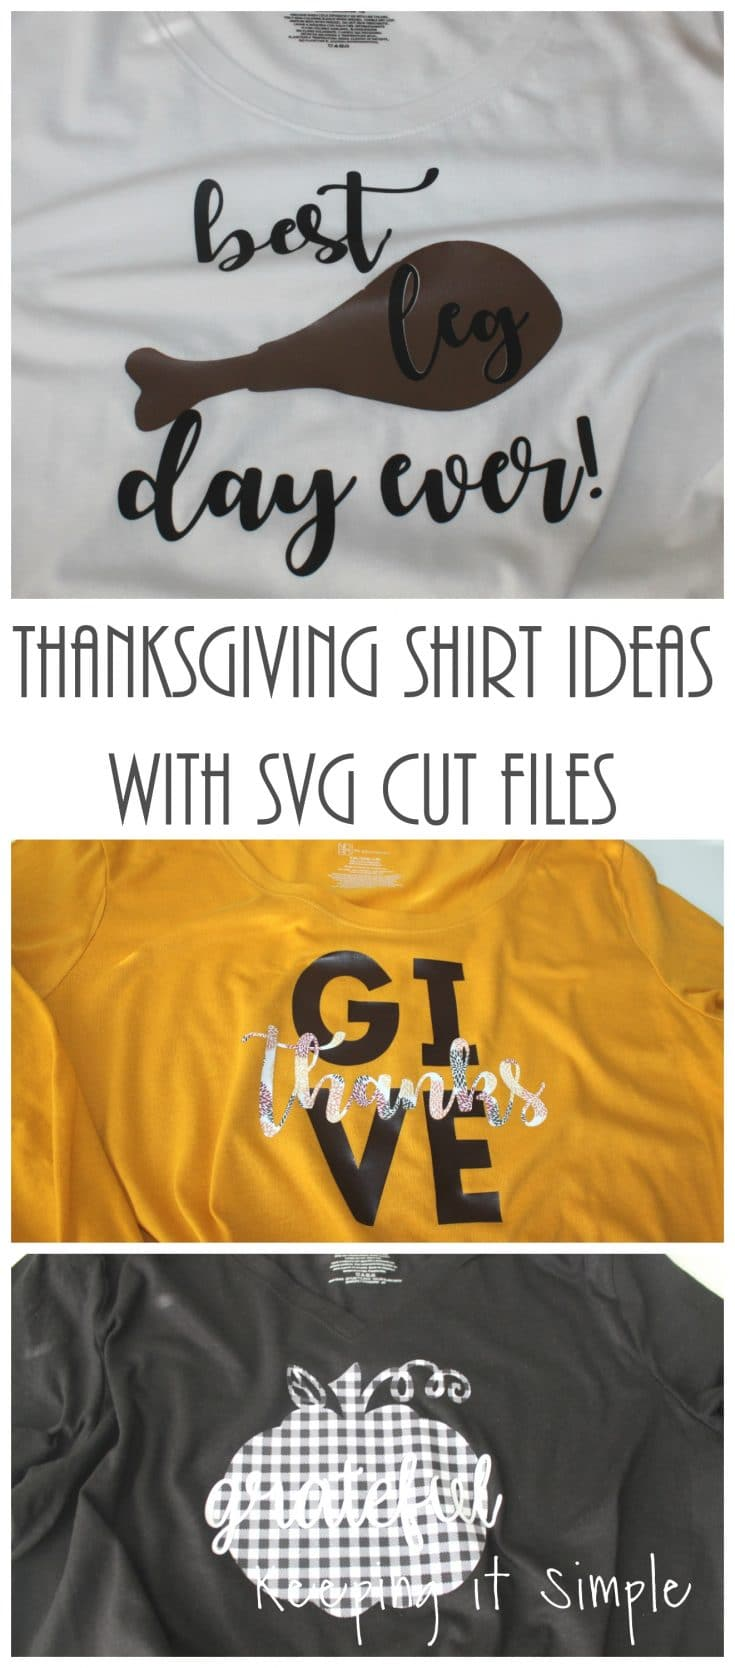 Thanksgiving Shirt Ideas with SVG Cut Files • Keeping it Simple